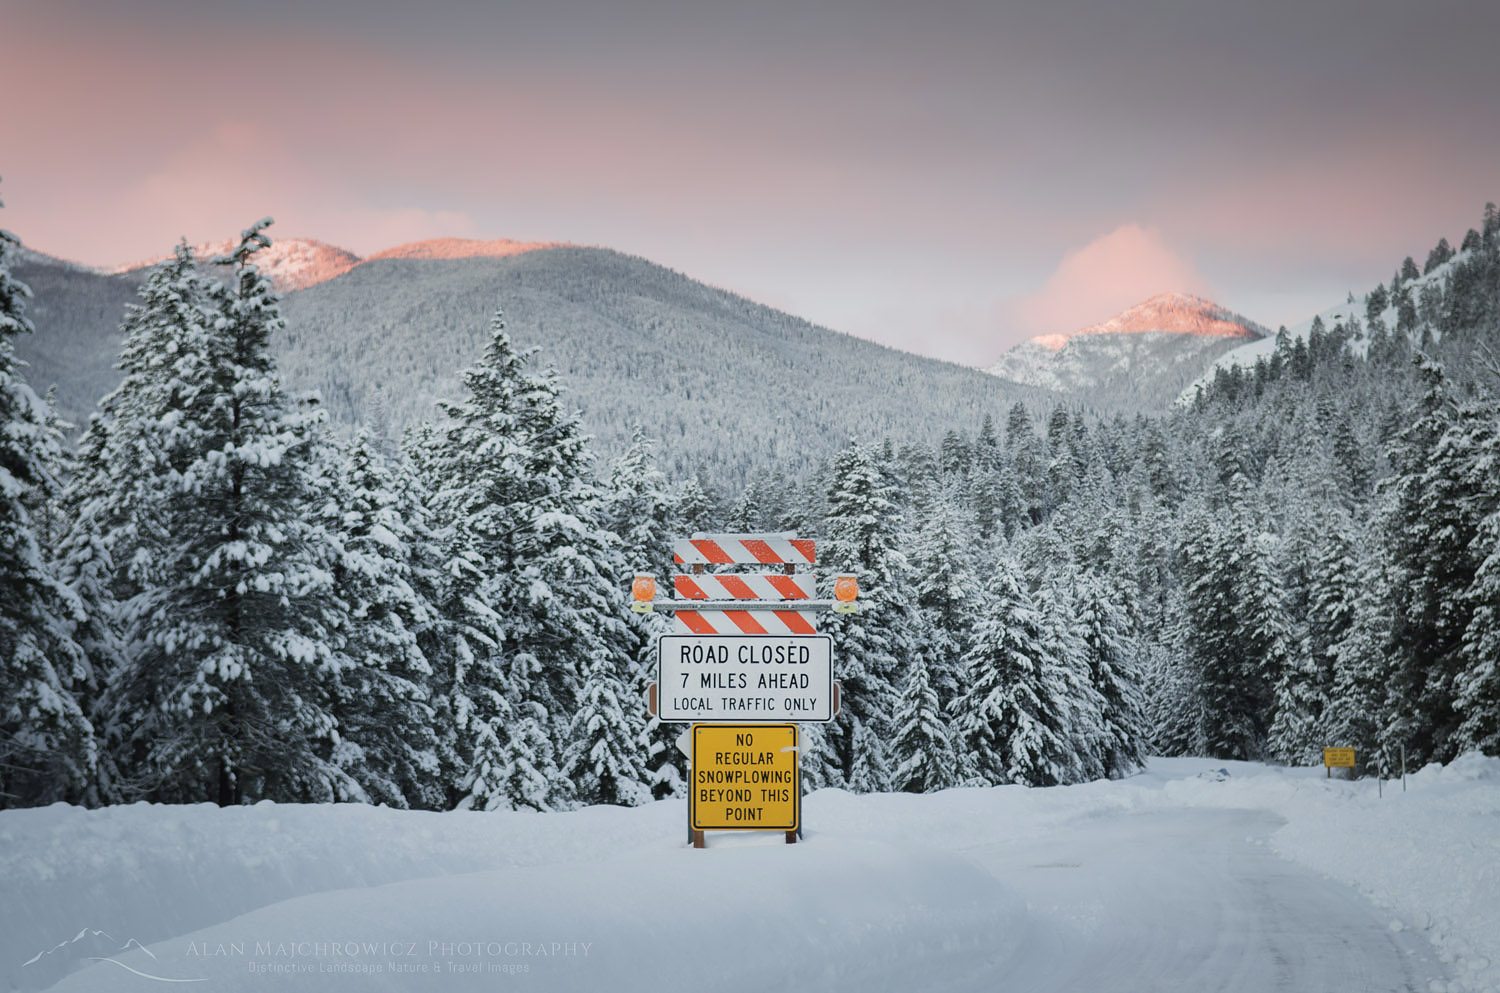 North Cascades Highway winter road closure near Mazama, Washington